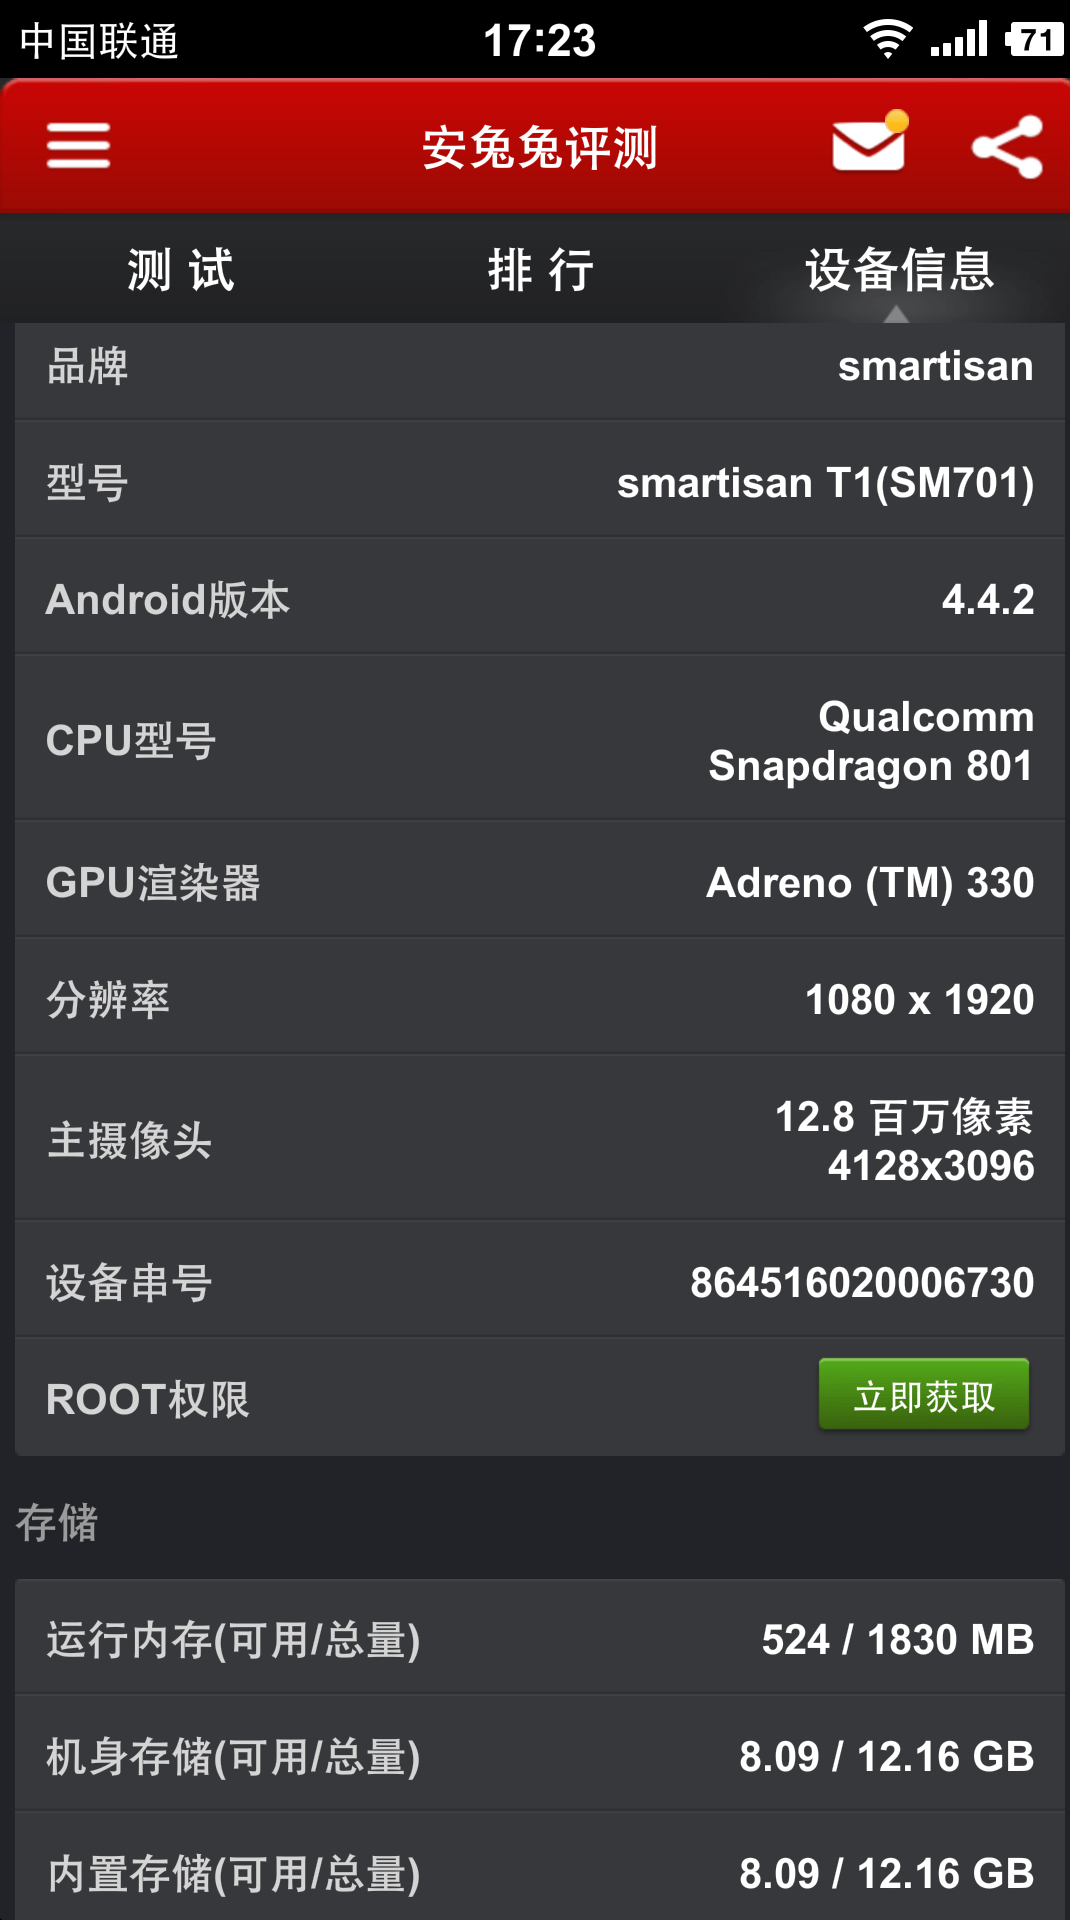 Smartisan T1 Review Chinas Apple Contender Pros Cons  Conclusion